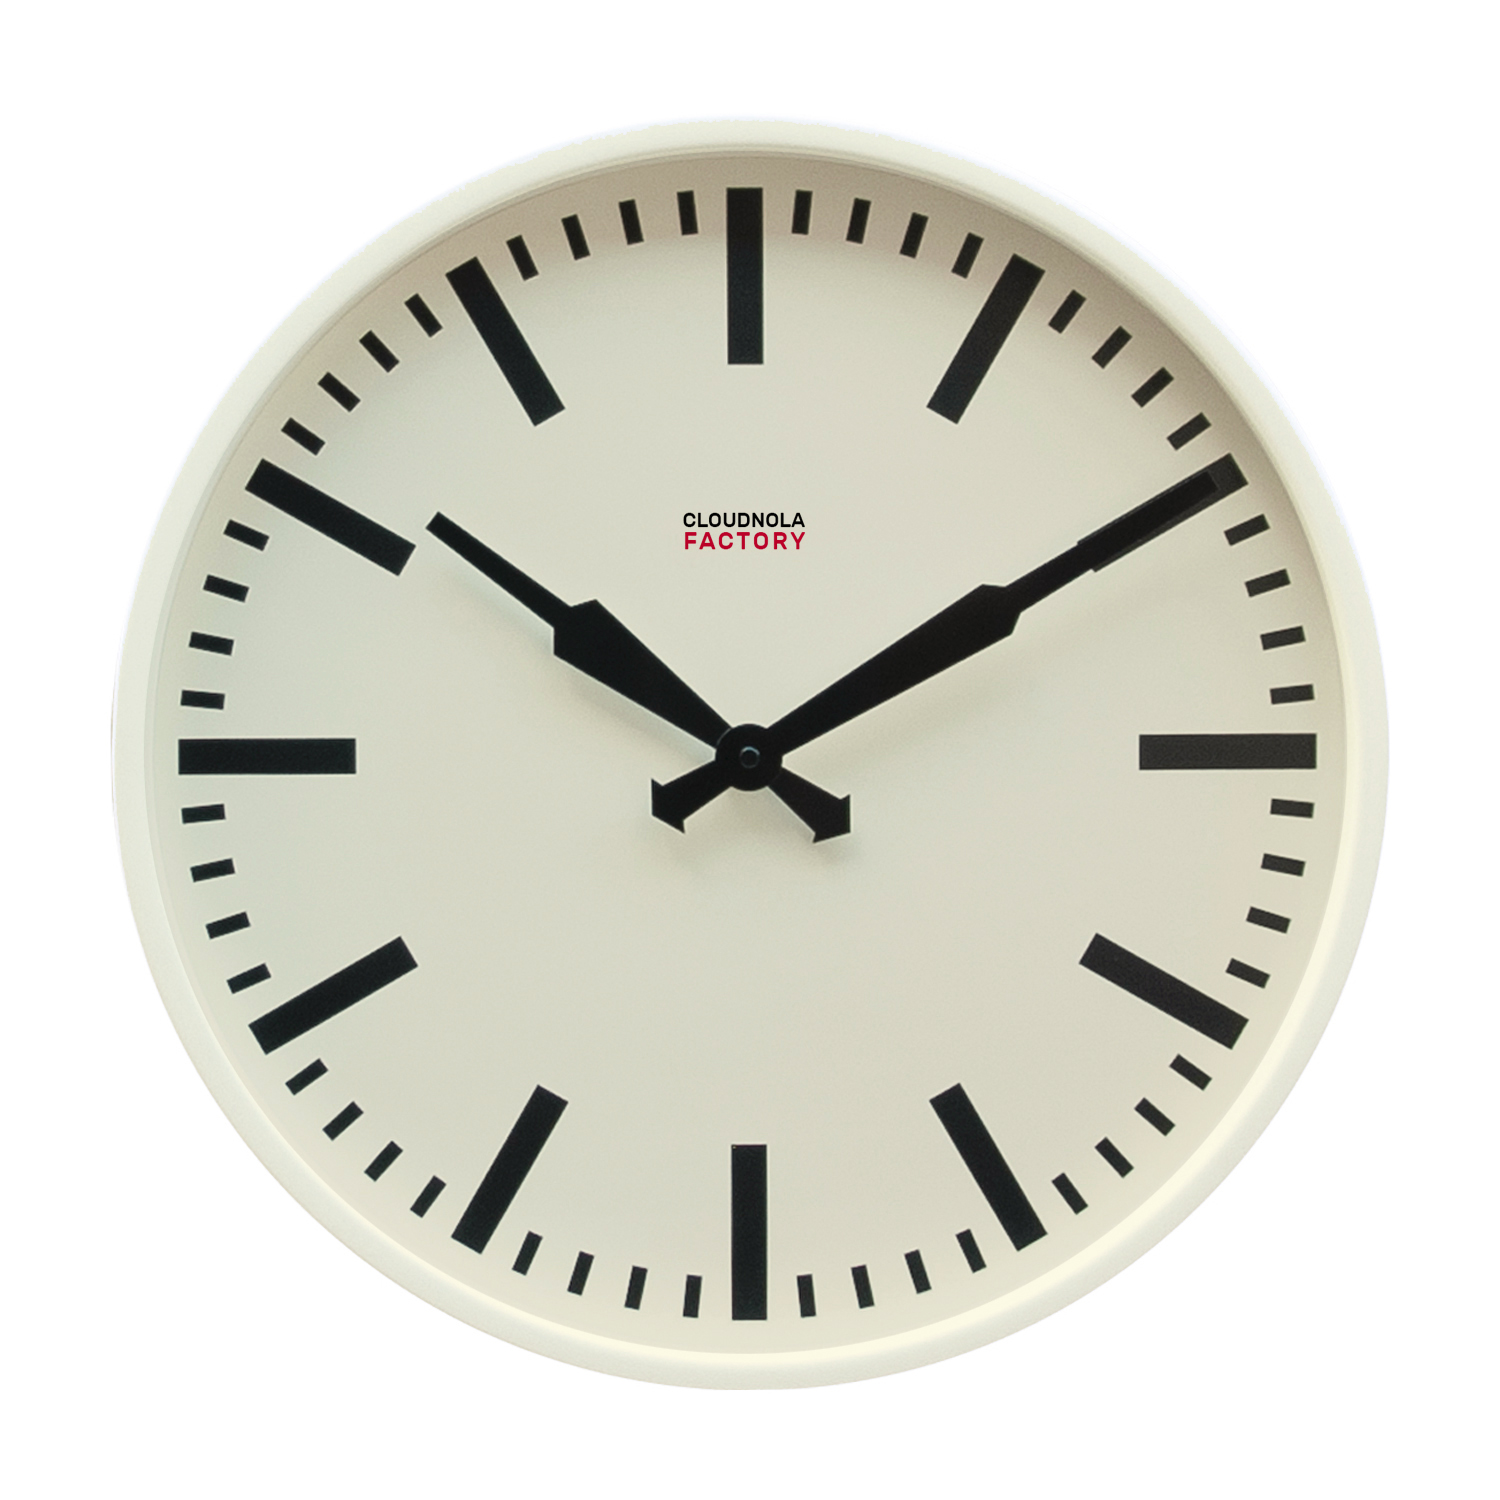 Cloudnola Factory Railway clock 45 cm White Stripe